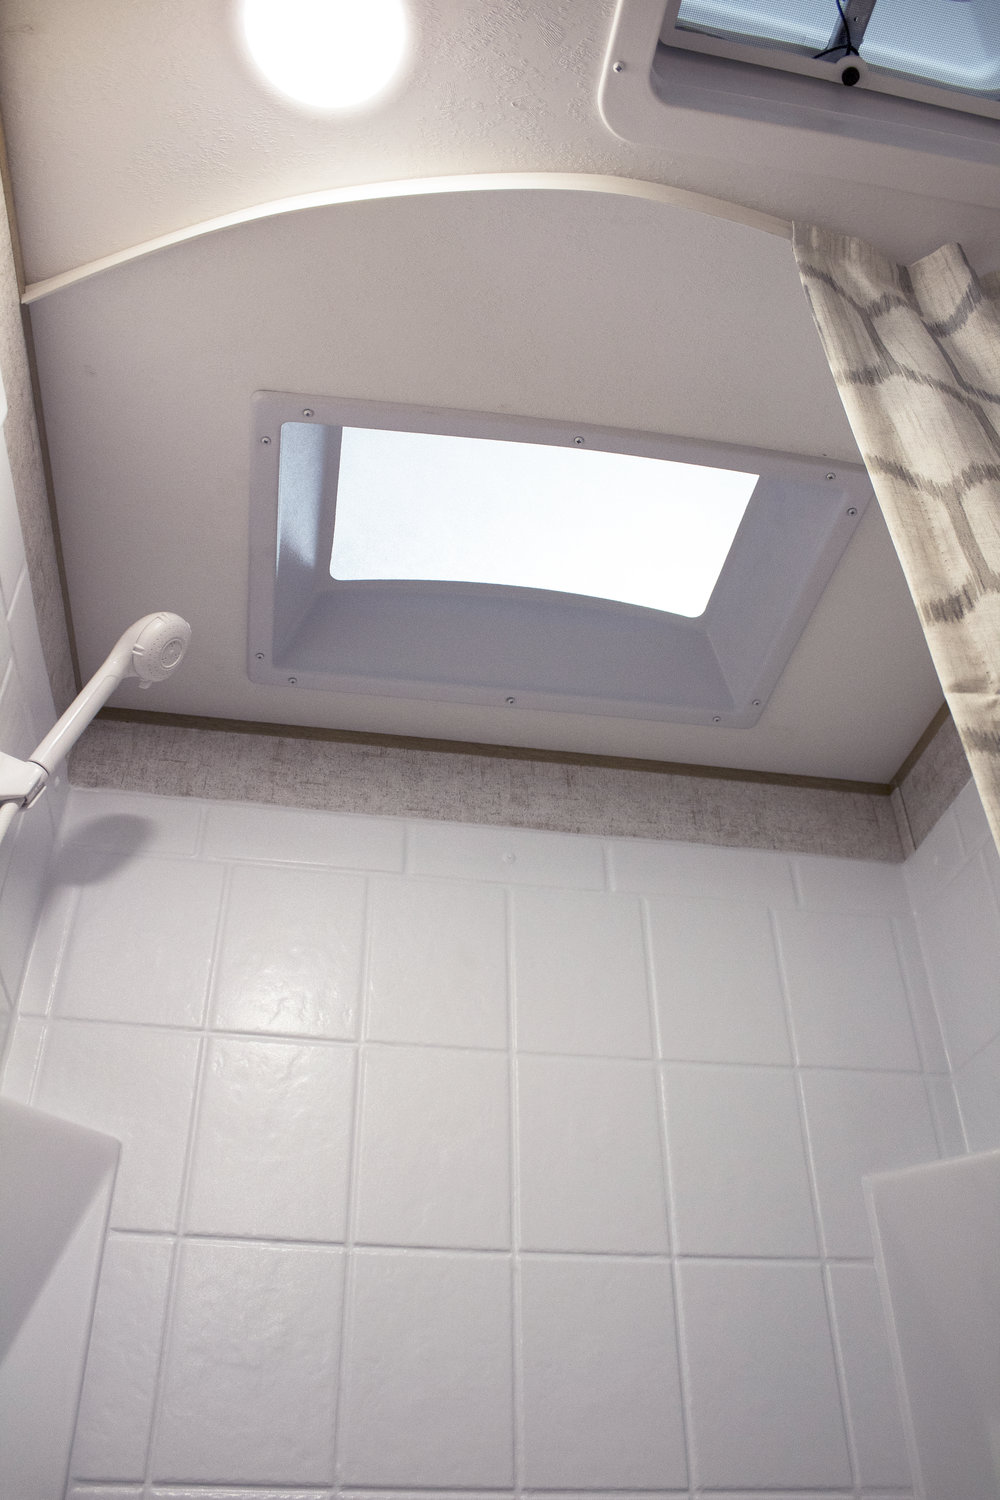 26 BH Bathroom Skylight and Ceiling Fan Vent.jpg